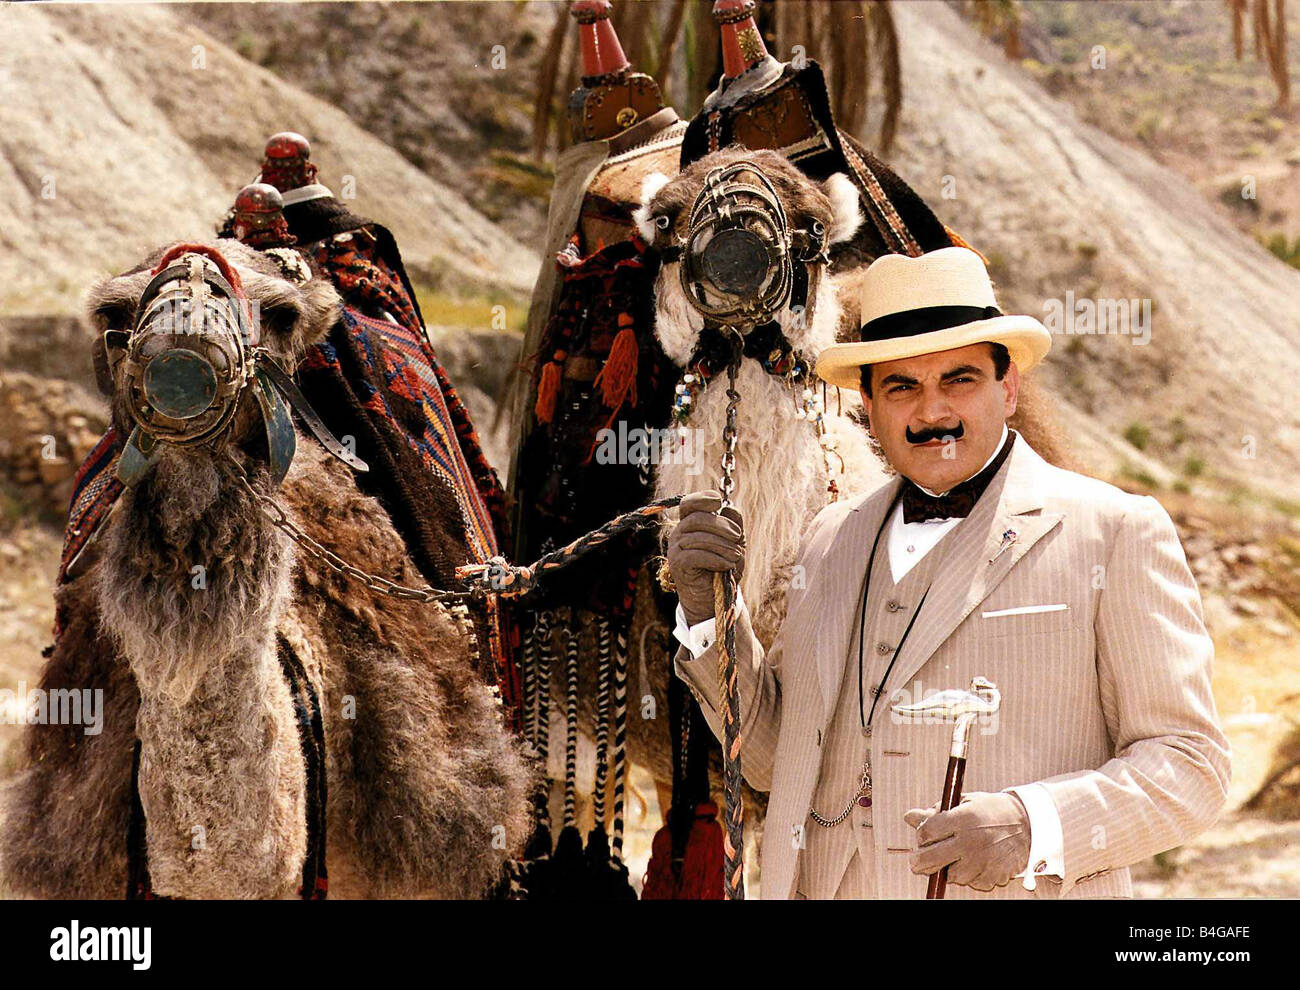 David Suchet actor plays the part of Poirot the detective - Stock Image